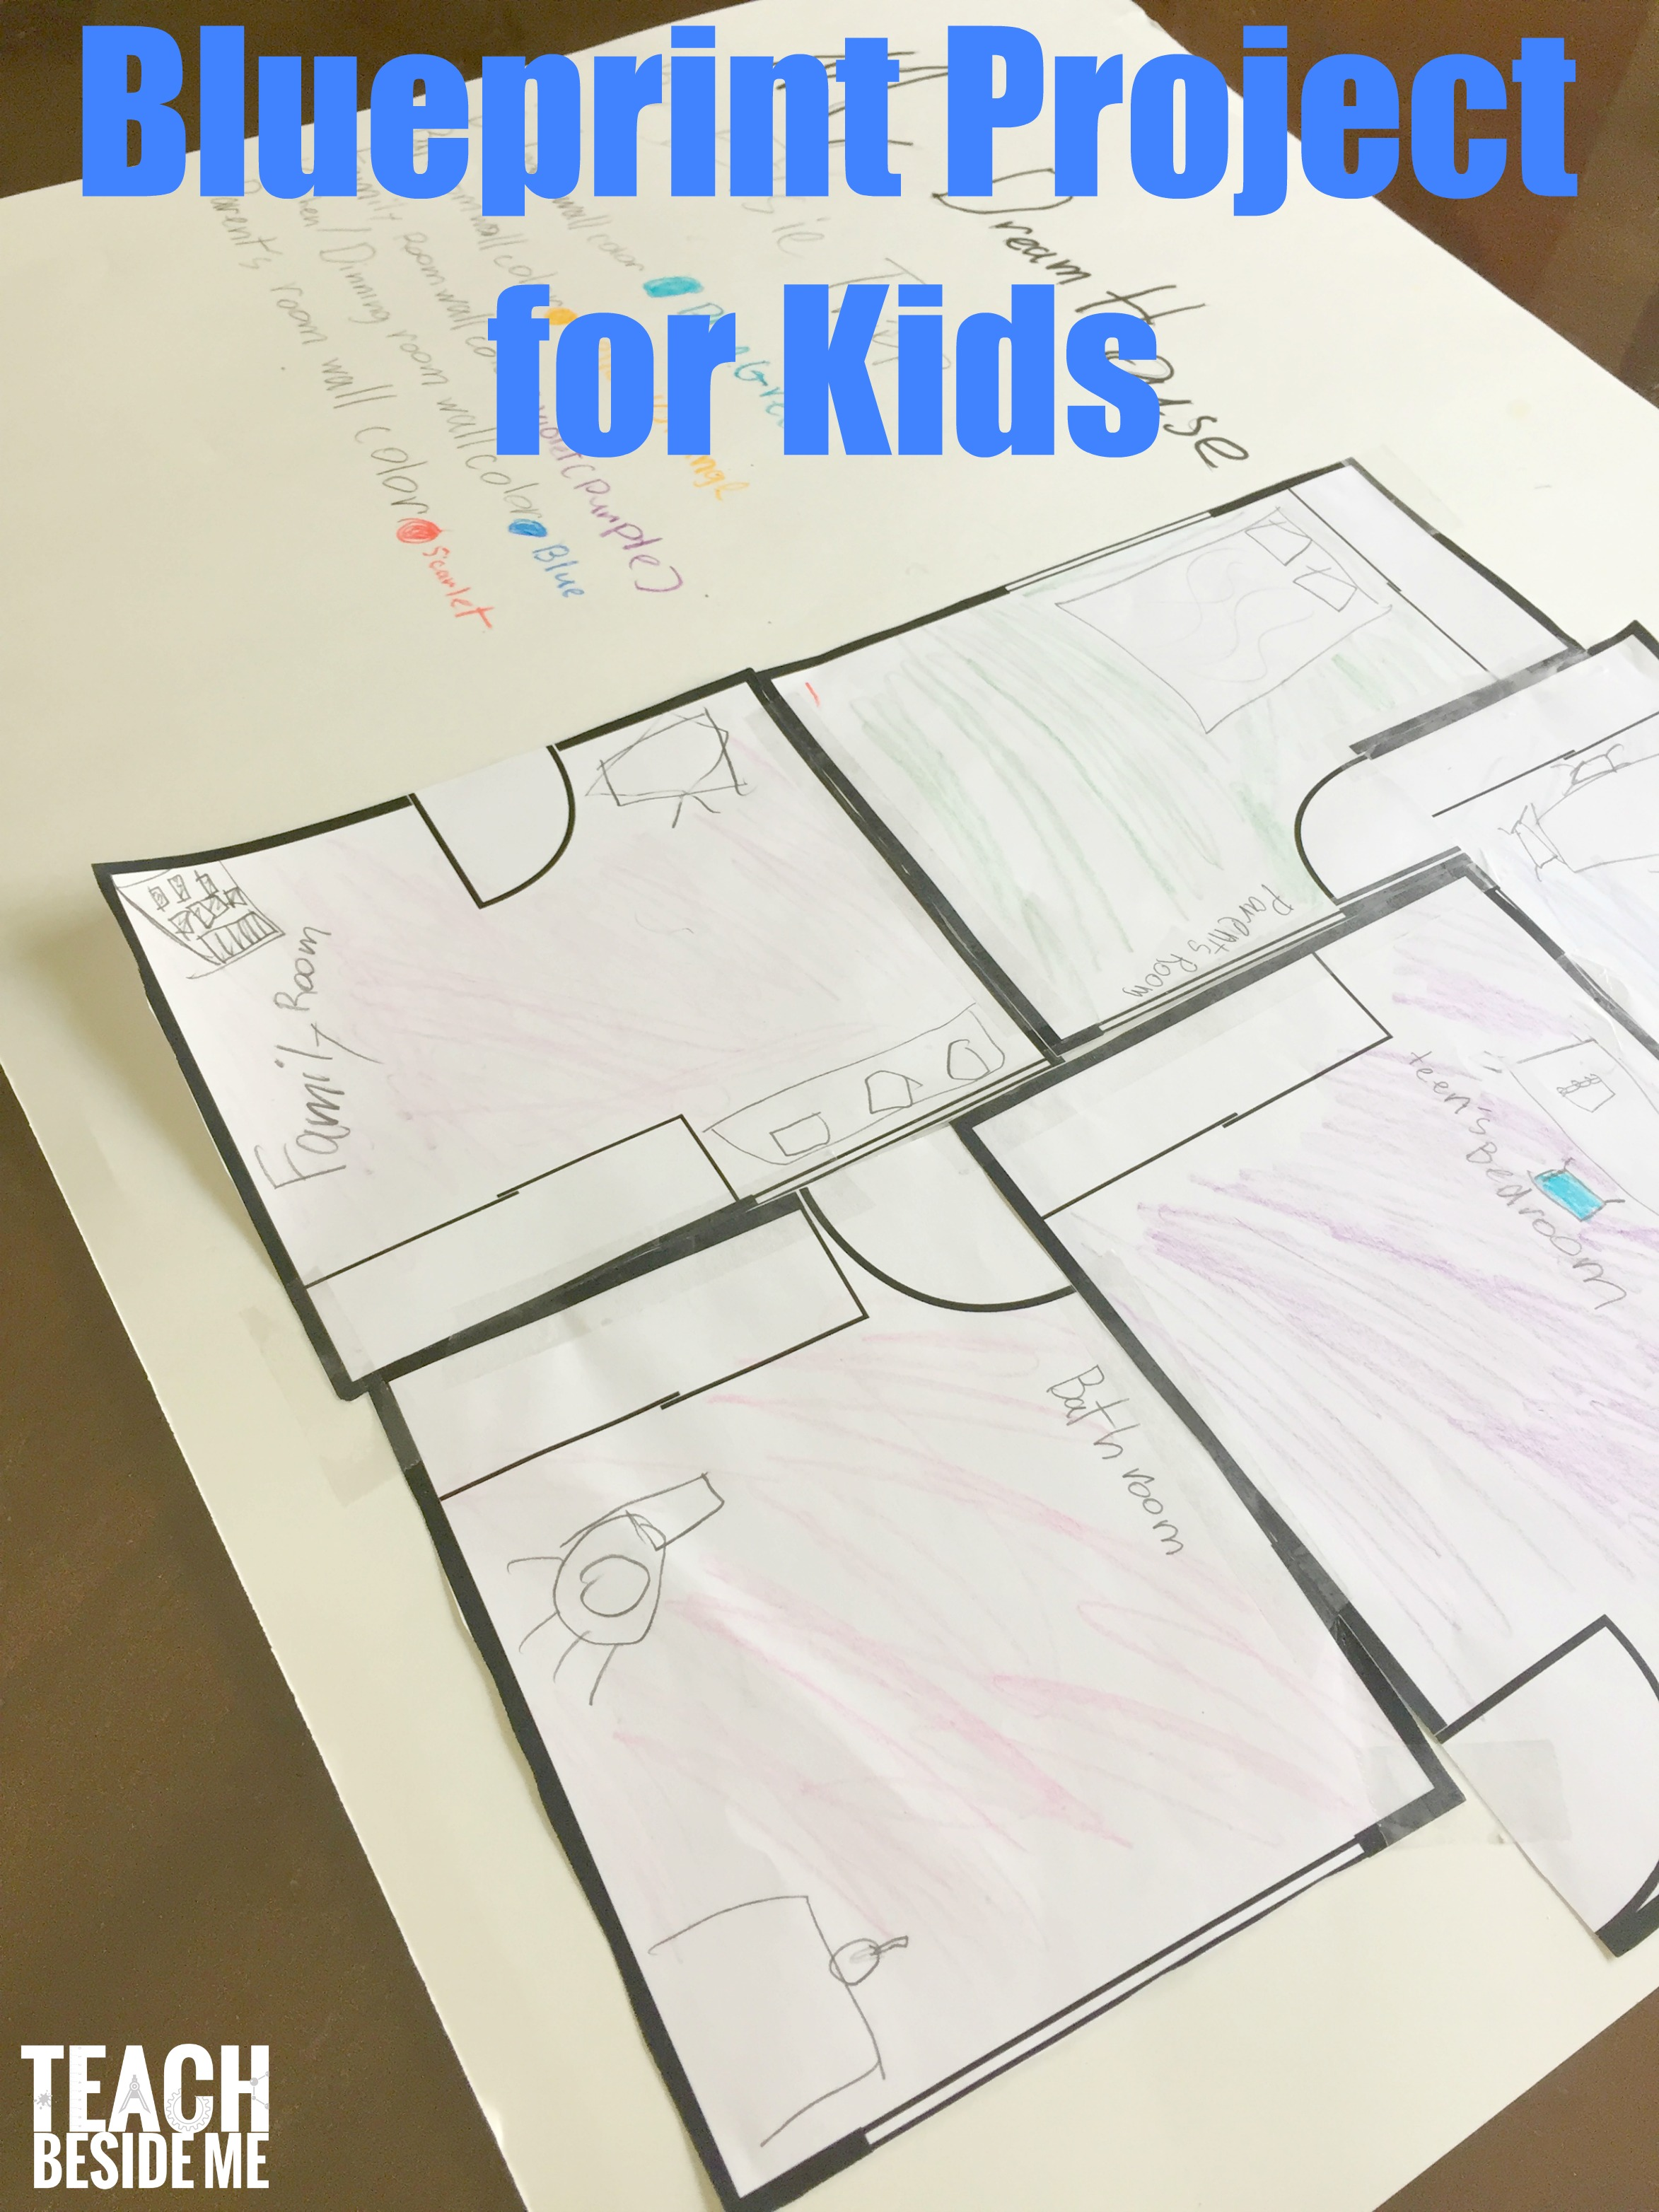 Blueprints and architecture for kids inspired by frank lloyd blueprints and architecture for kids inspired by frank lloyd wright teach beside me malvernweather Choice Image